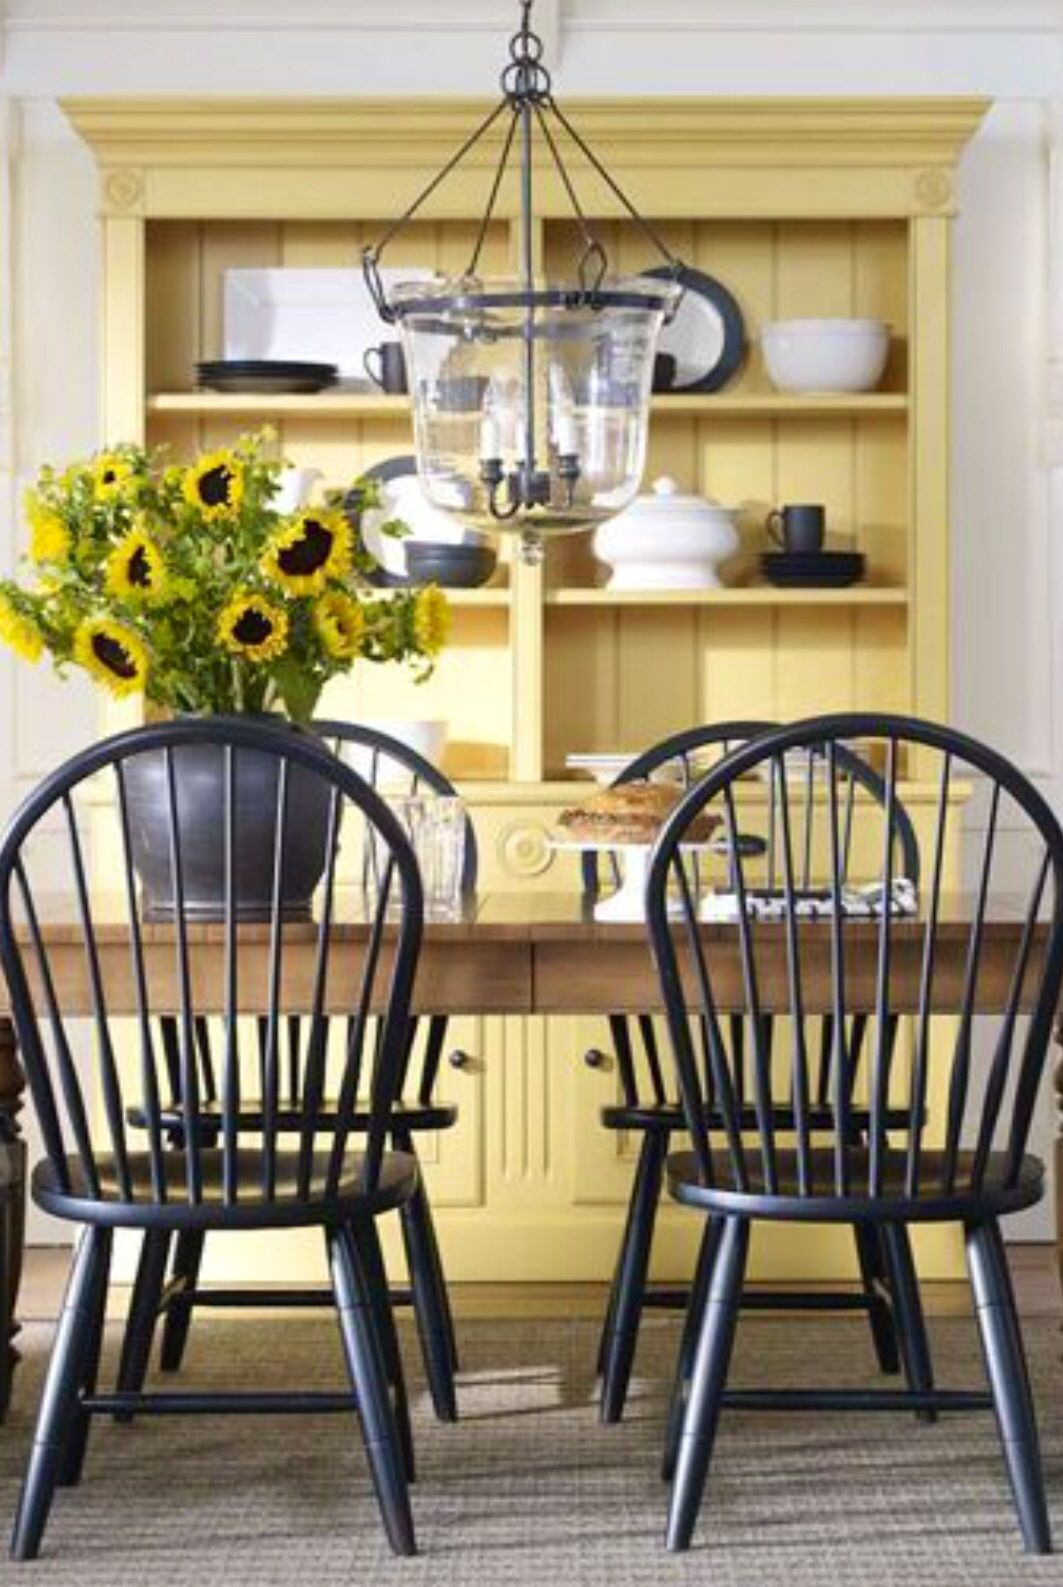 1000 ideas about ethan allen dining on pinterest ethan for Ethan allen dining room